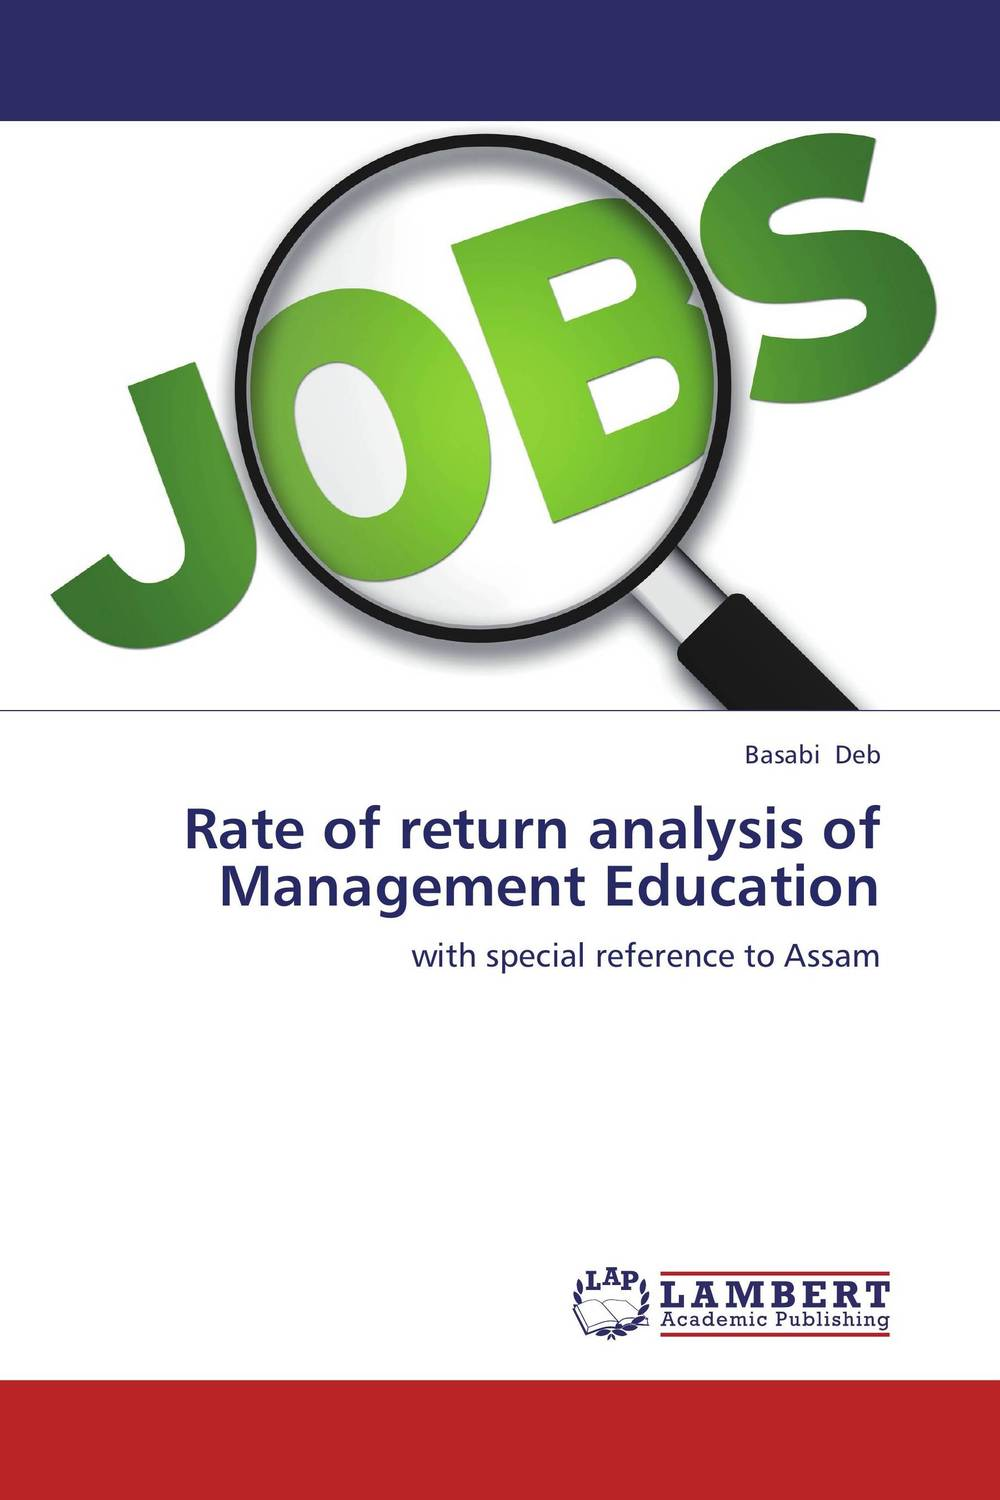 Rate of return analysis of Management Education mohammad rezwanul karim and tariq saiful islam cost and benefit of higher education in bangladesh